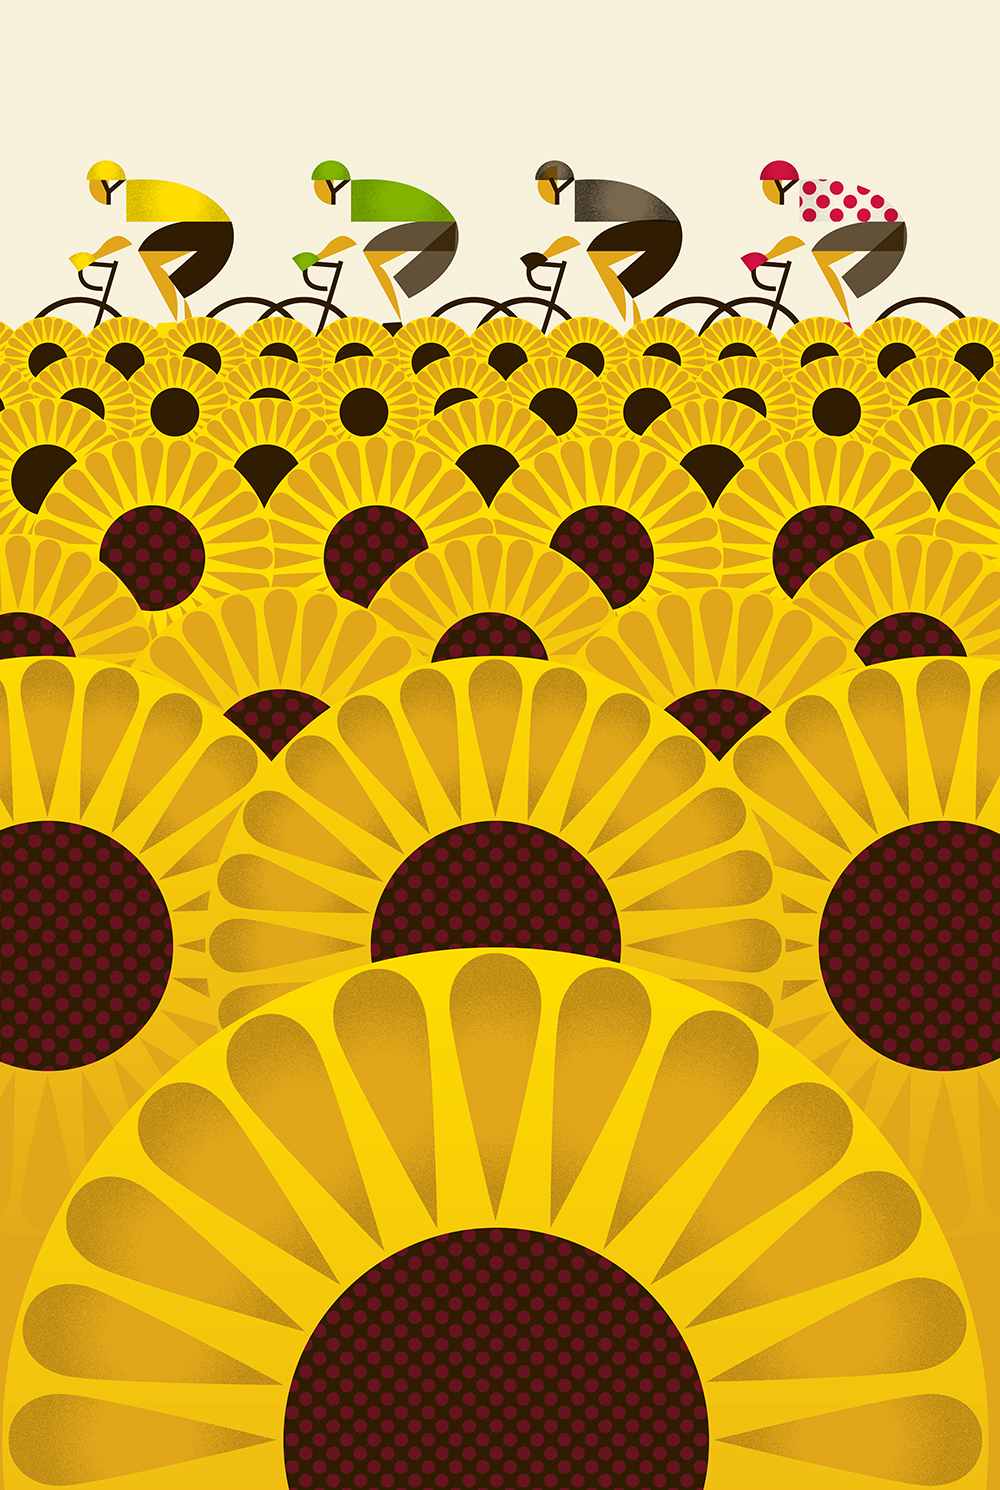 Les Tournesols - Design House Greetings